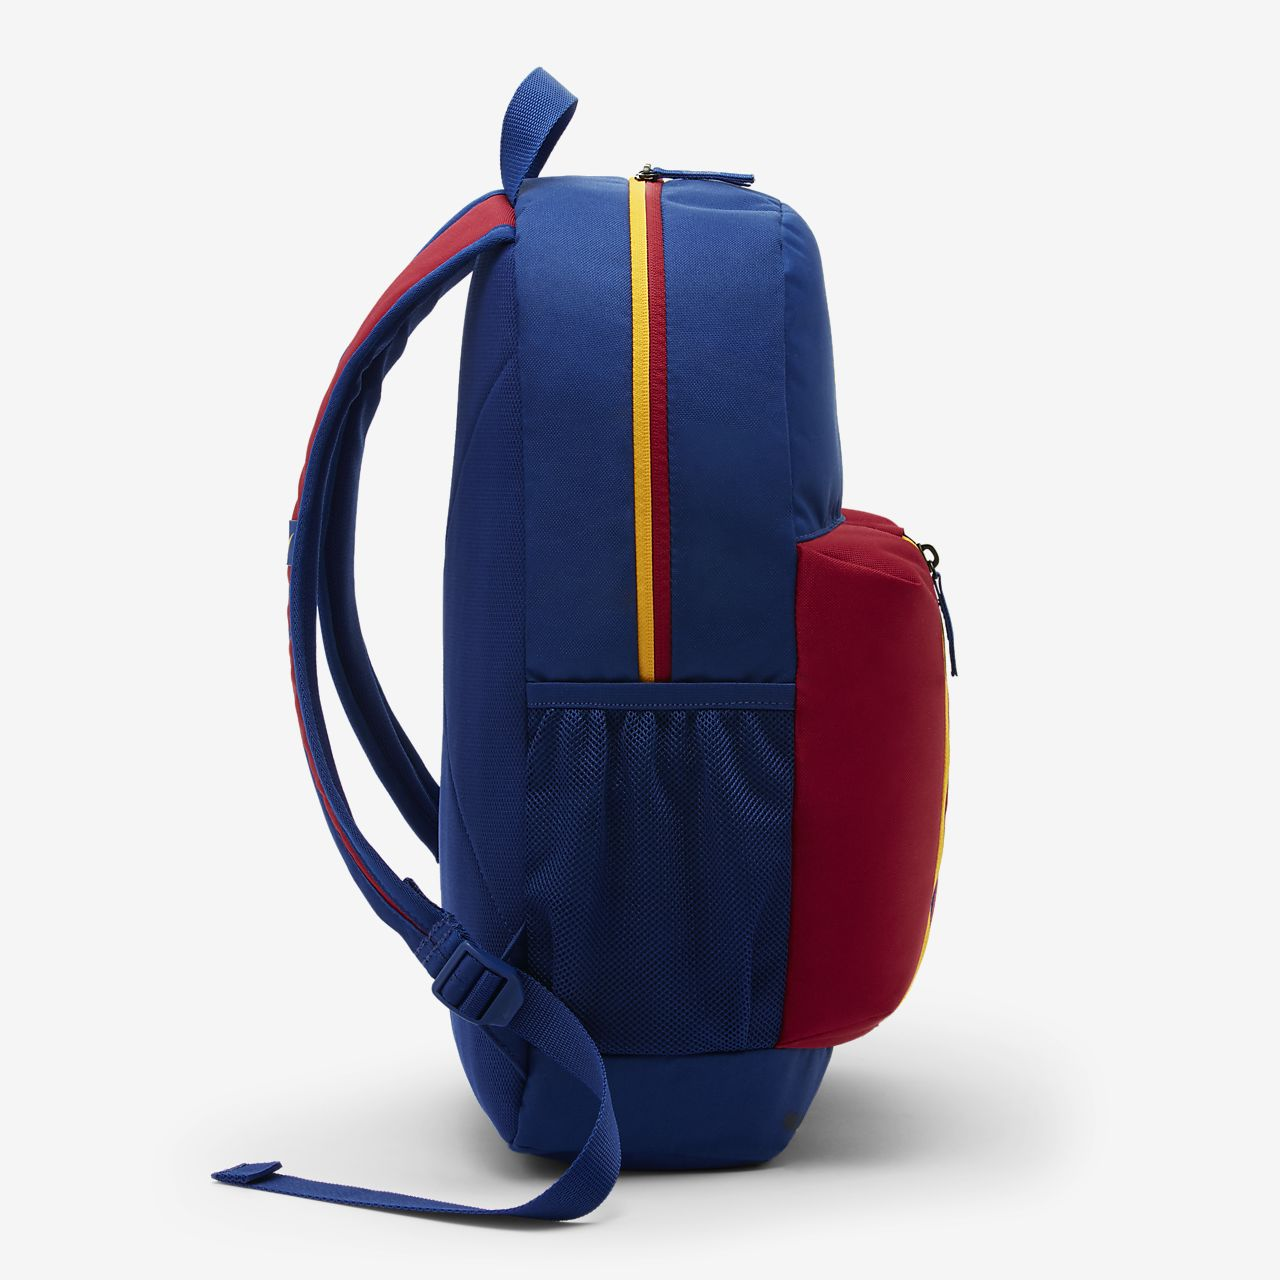 37c5db7d4 FC Barcelona Stadium Kids' Football Backpack. Nike.com GB